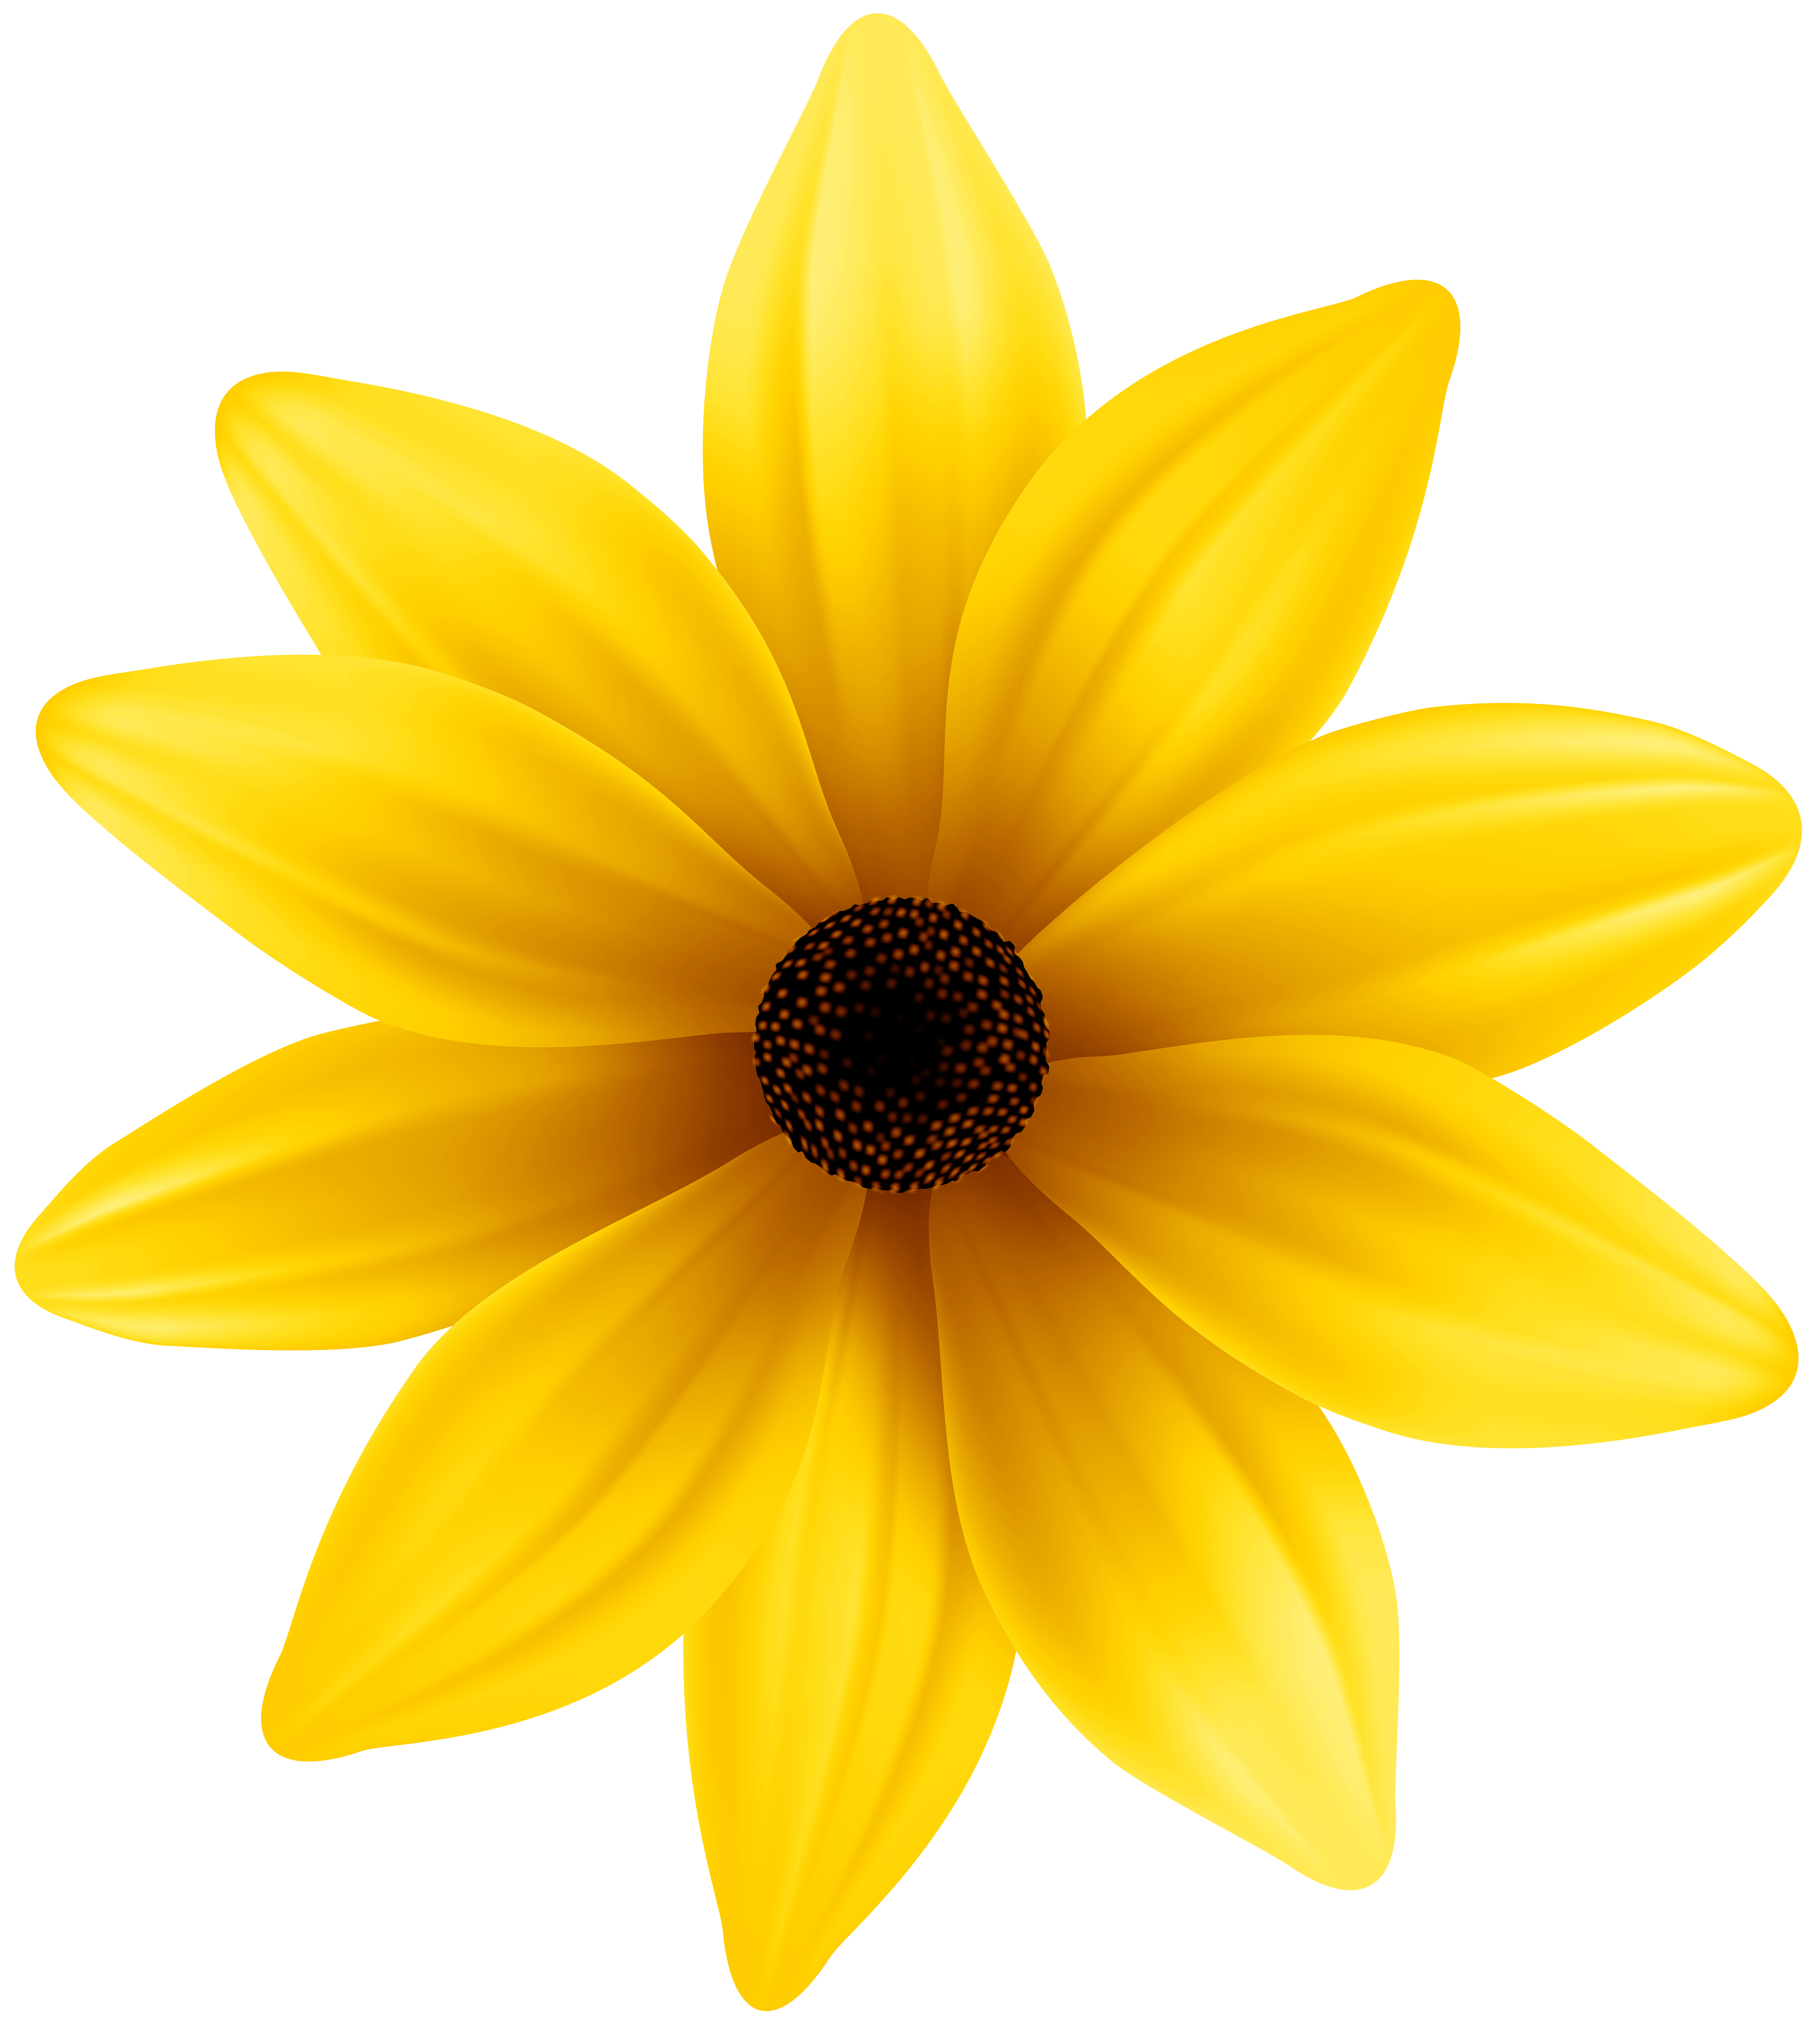 Yellow Flower PNG Clip Art Image.